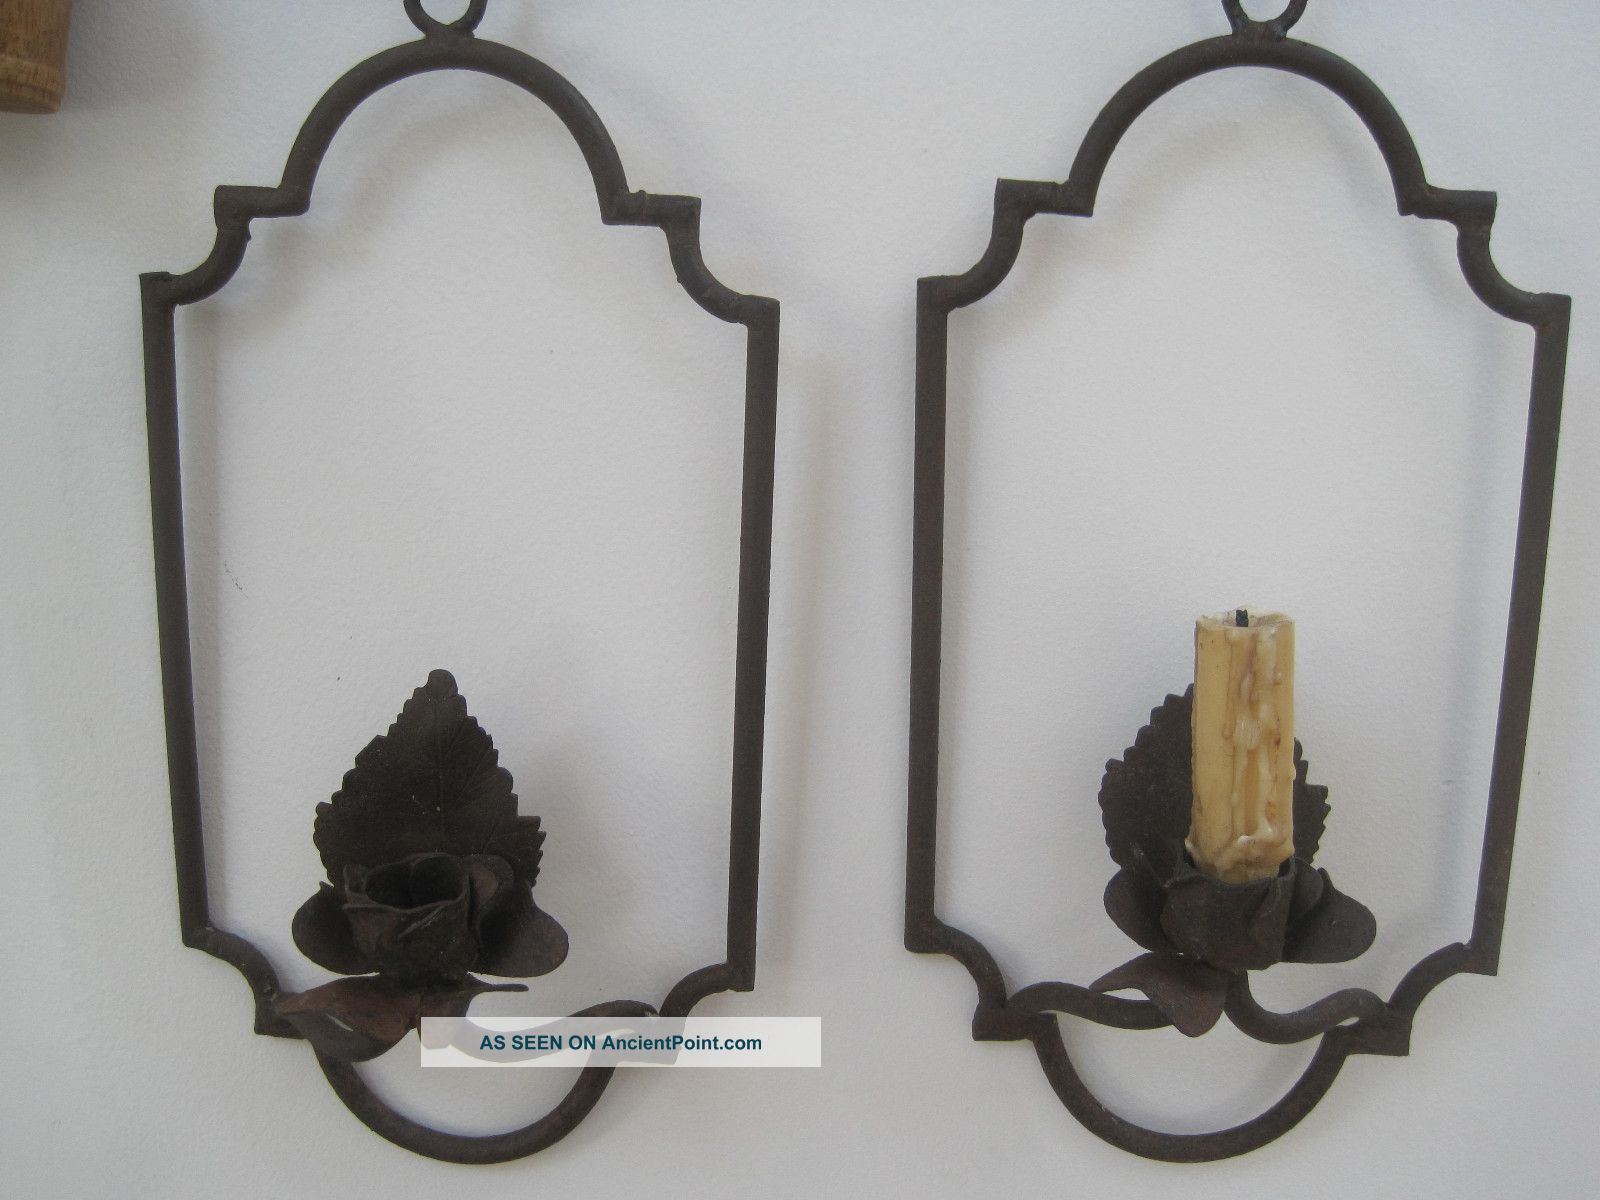 Wall Sconces For Candles Wrought Iron : Hoydens & Firebrands: Light and Shadow in the 17th Century